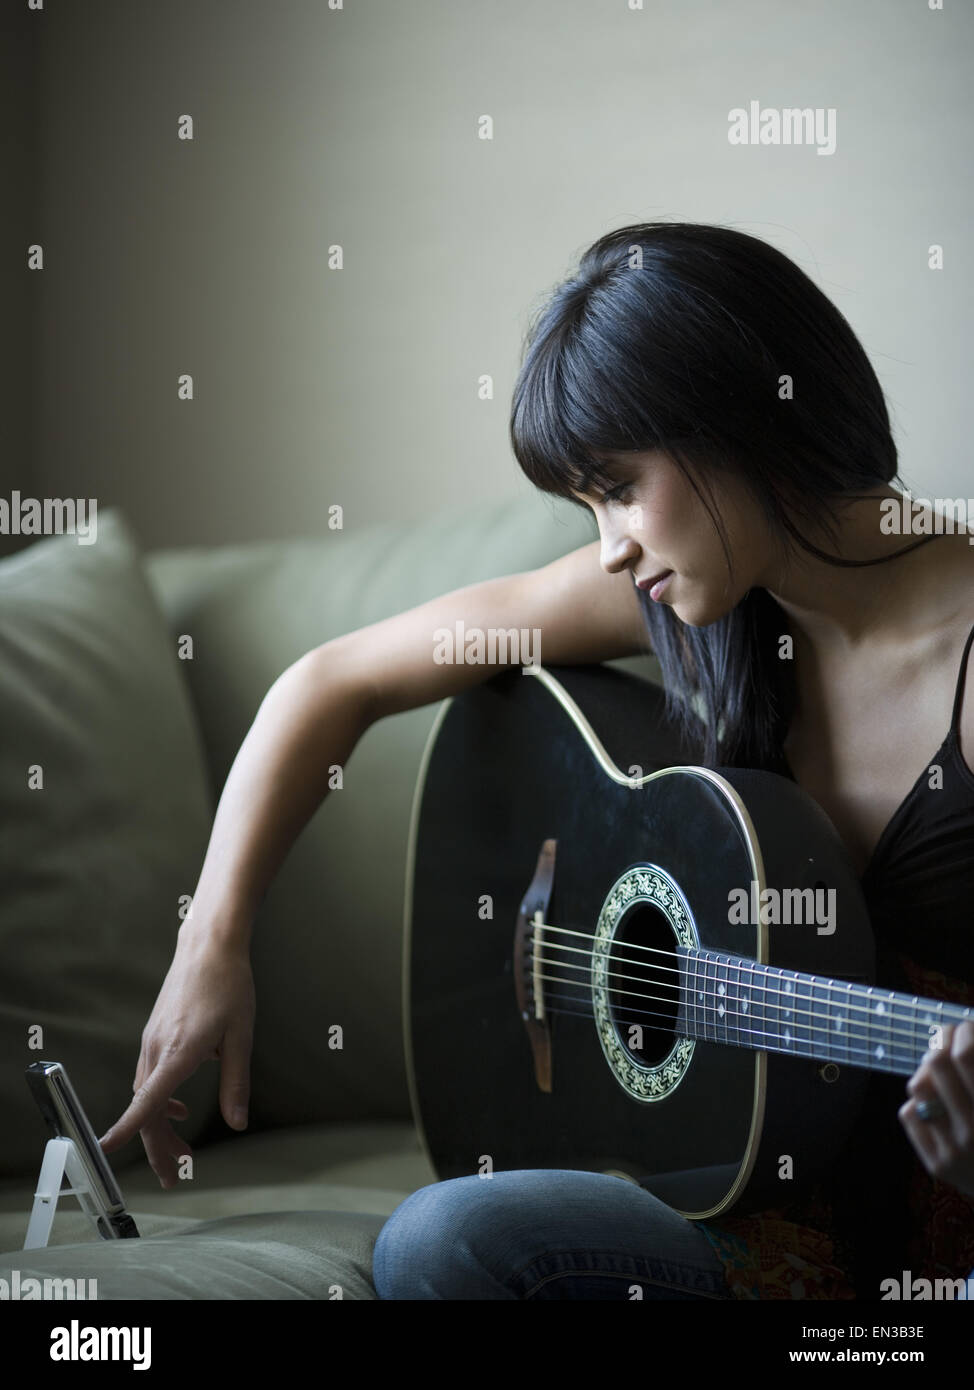 Woman tuning guitar with metronome - Stock Image